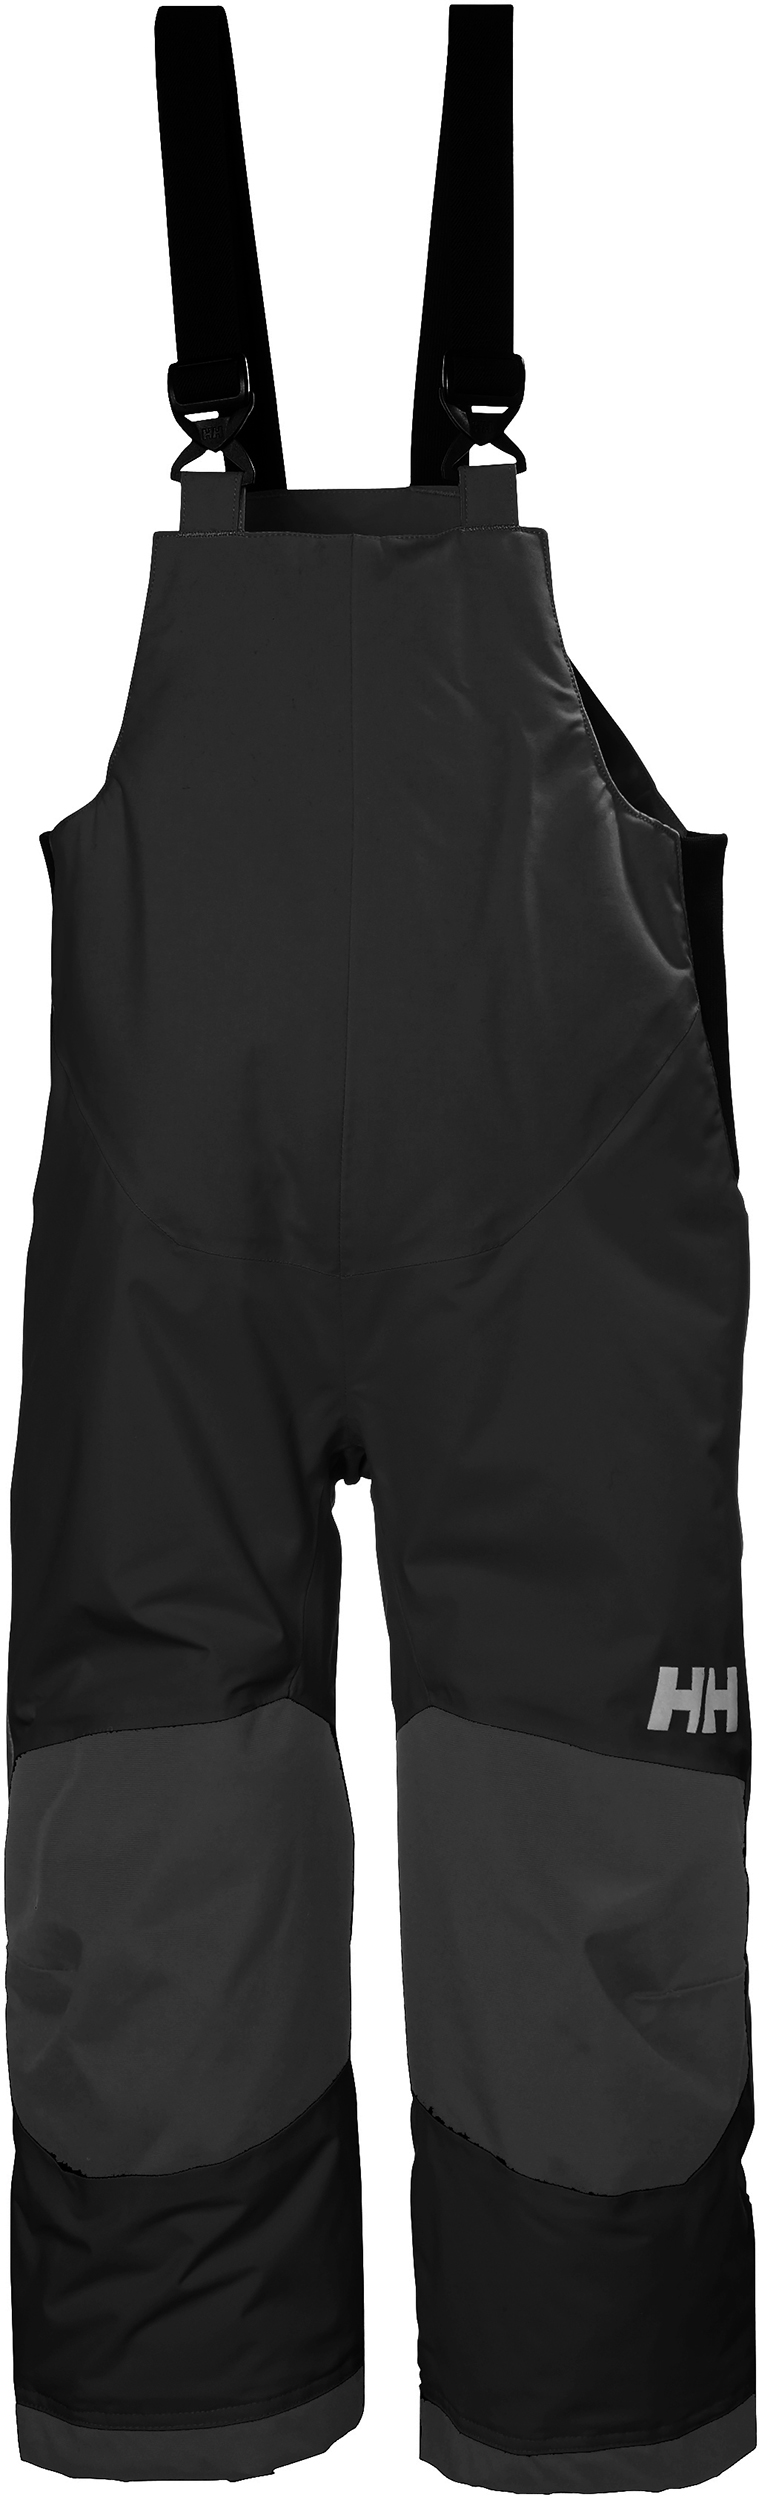 Helly-Hansen Boys Rider 2 Bib Waterproof Insulated Winter Snow Pant Overalls